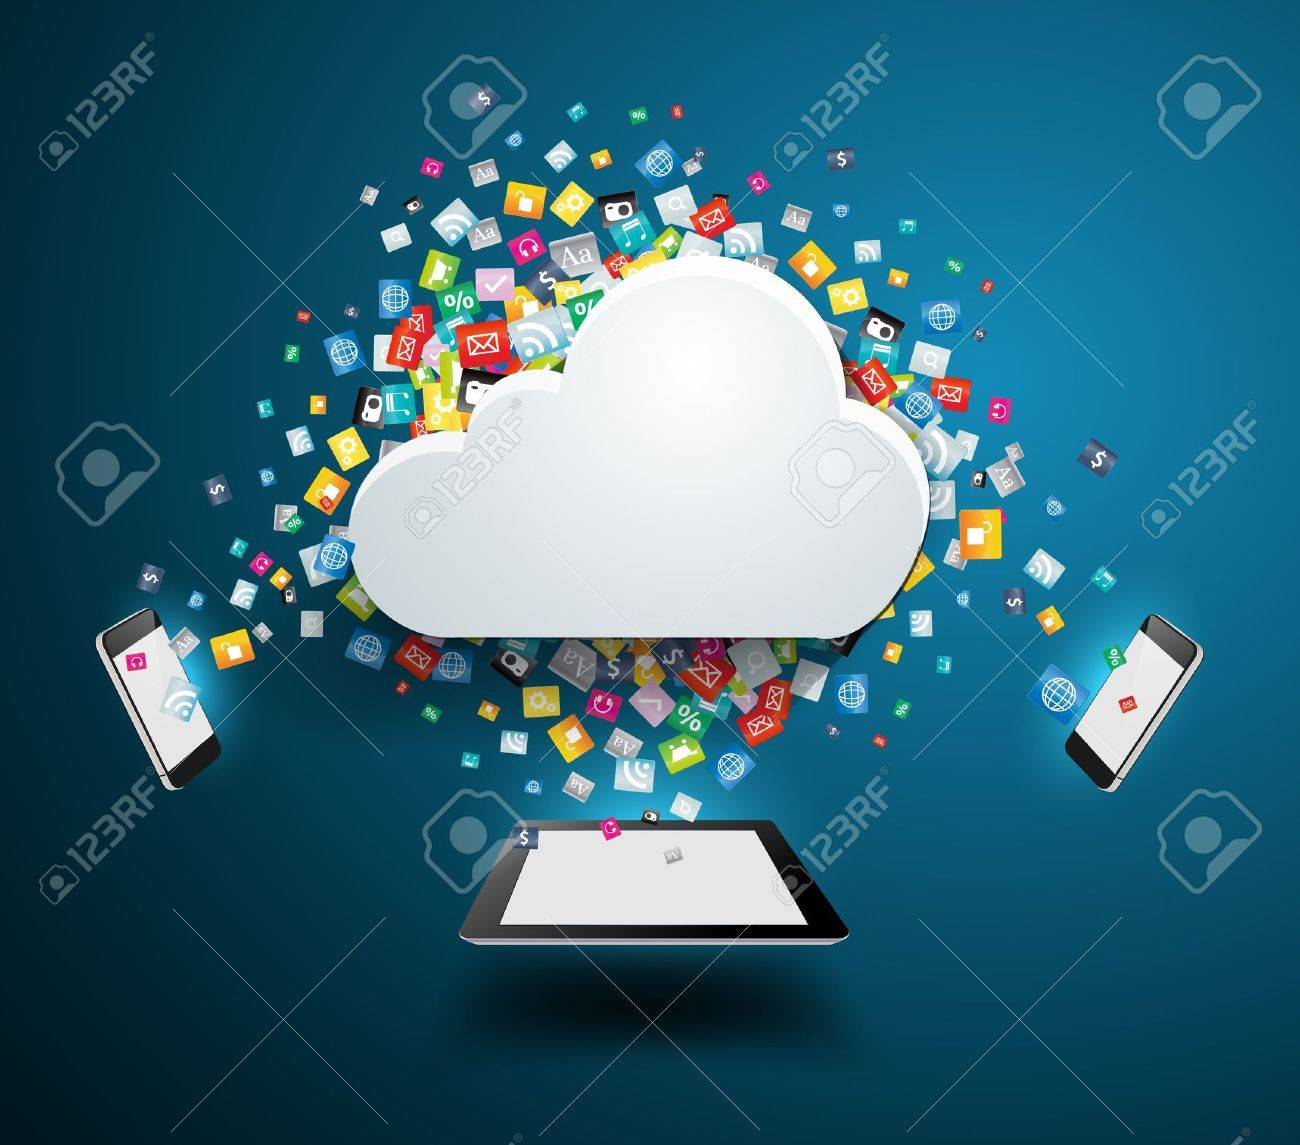 Cloud computing concept, With colorful application icon business software and social media networking service idea concept, illustration modern template design Stock Vector - 21122548